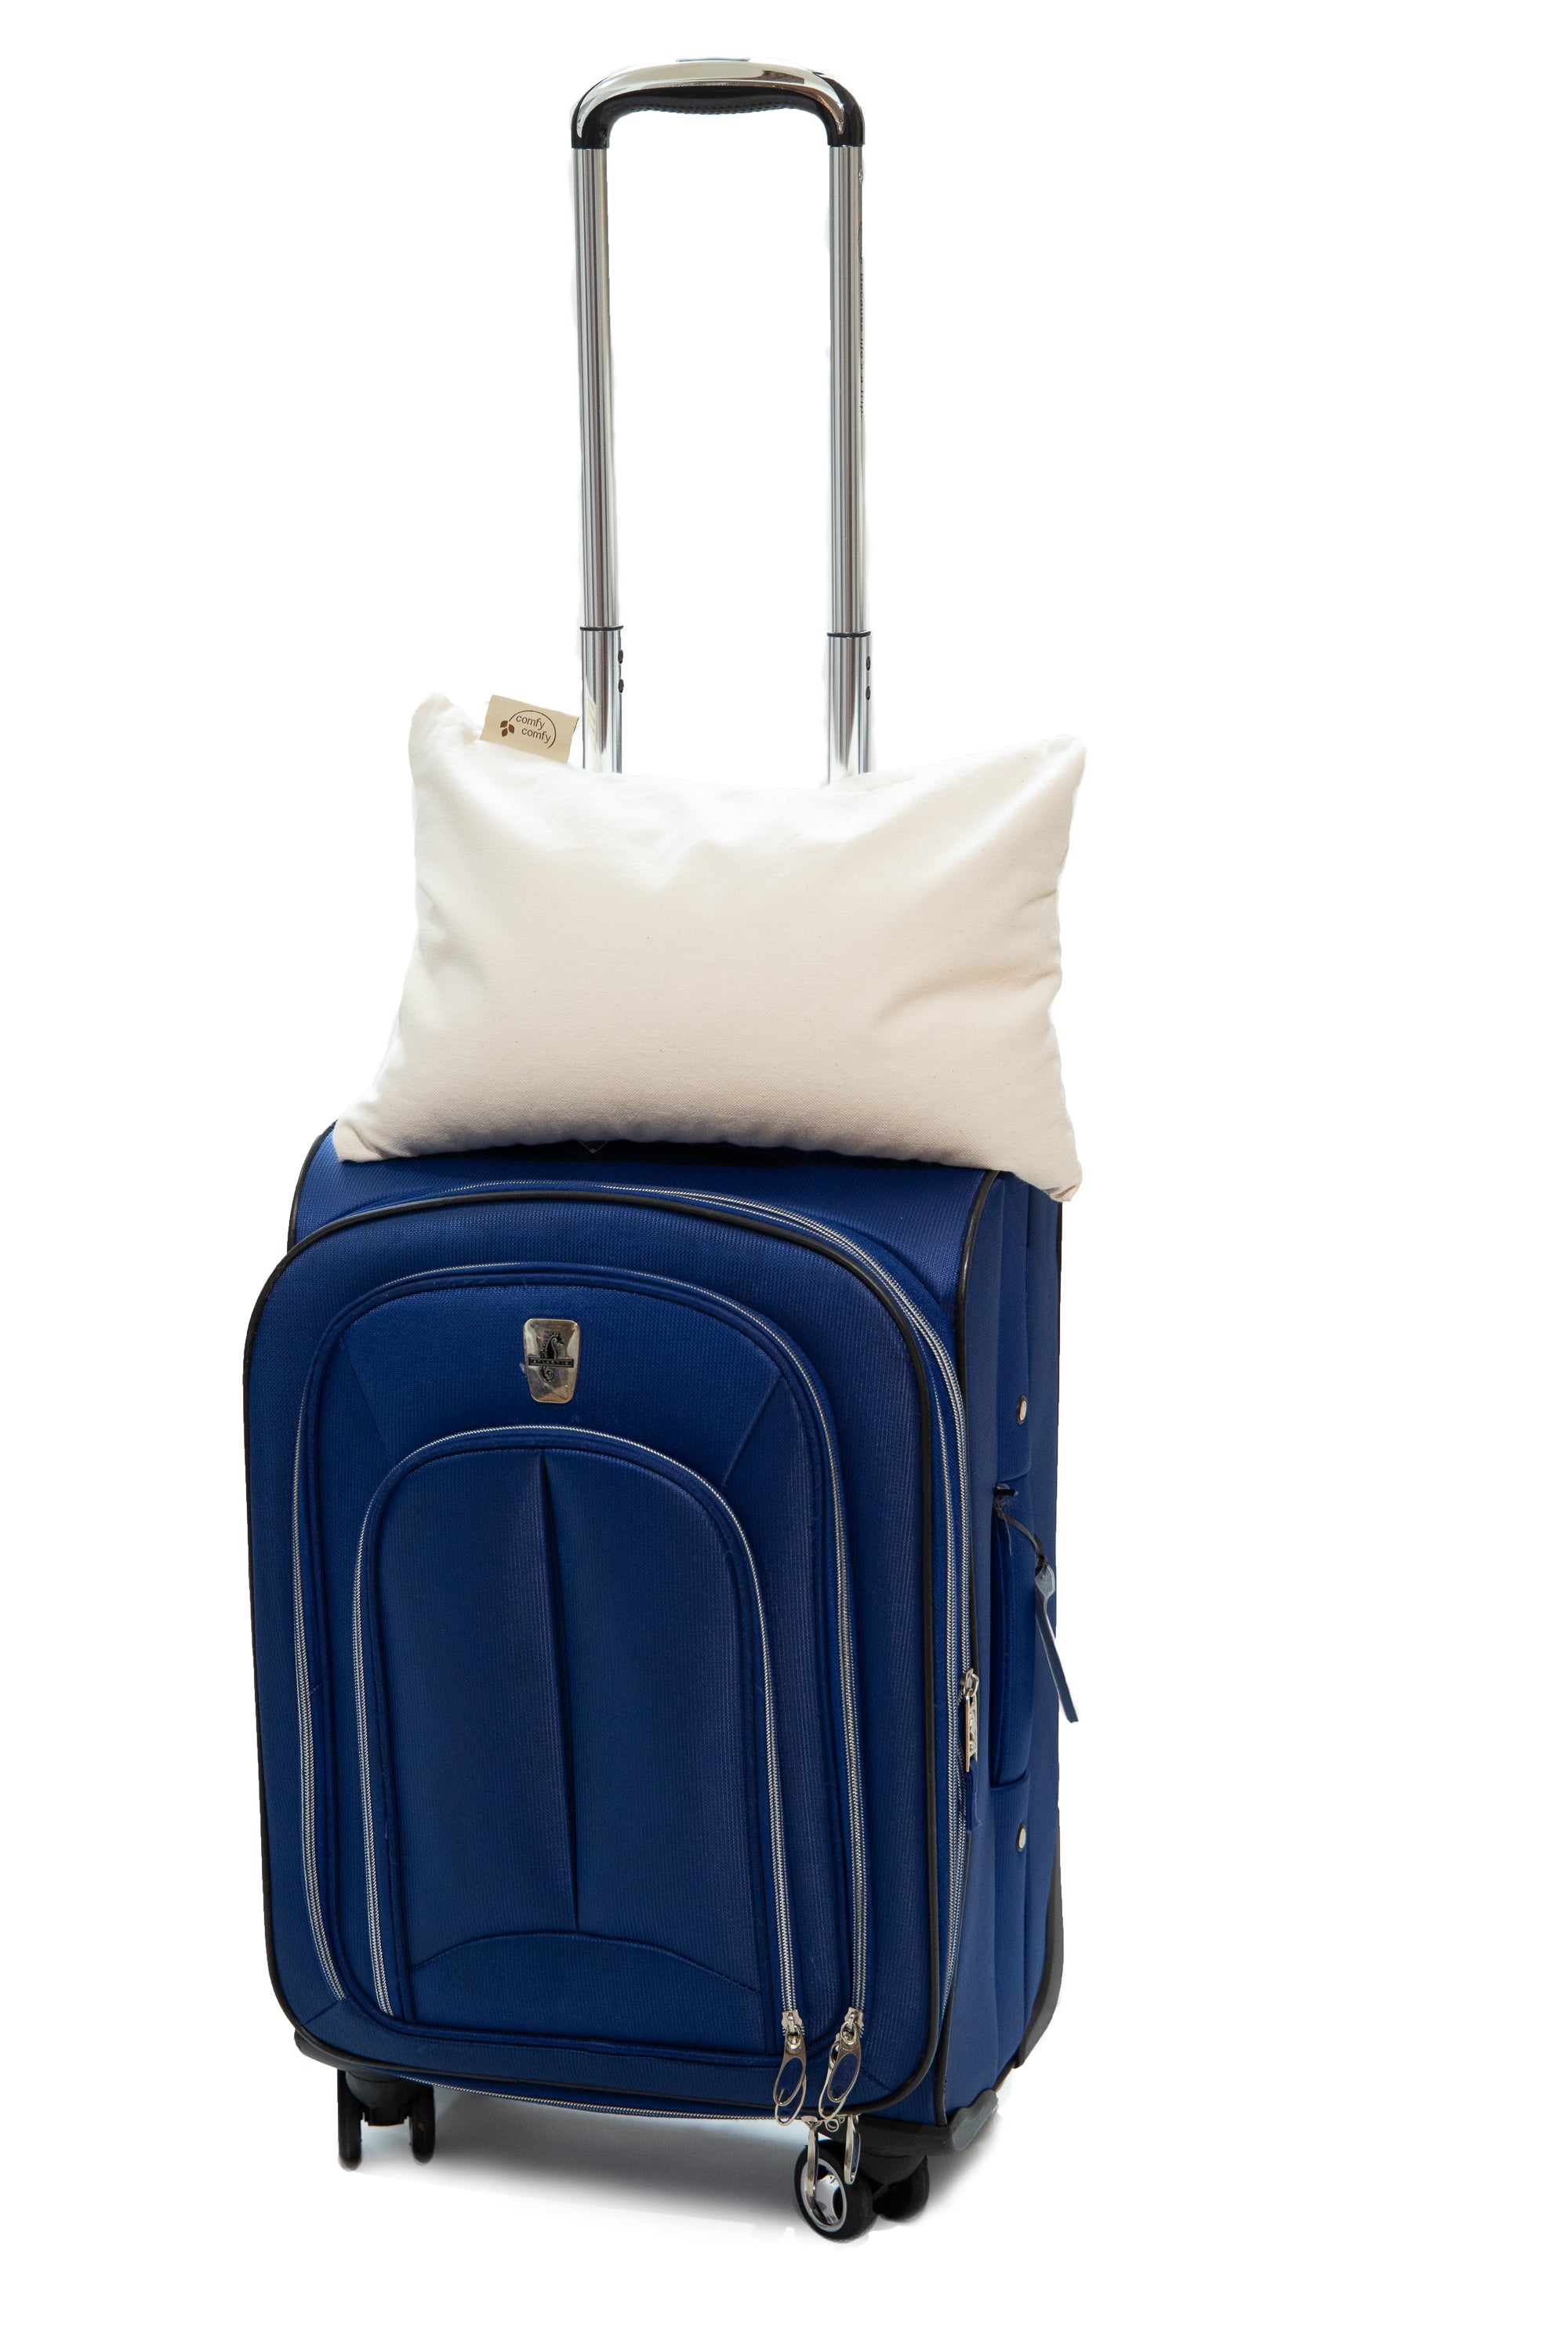 Travel pillow on carry on suitcase